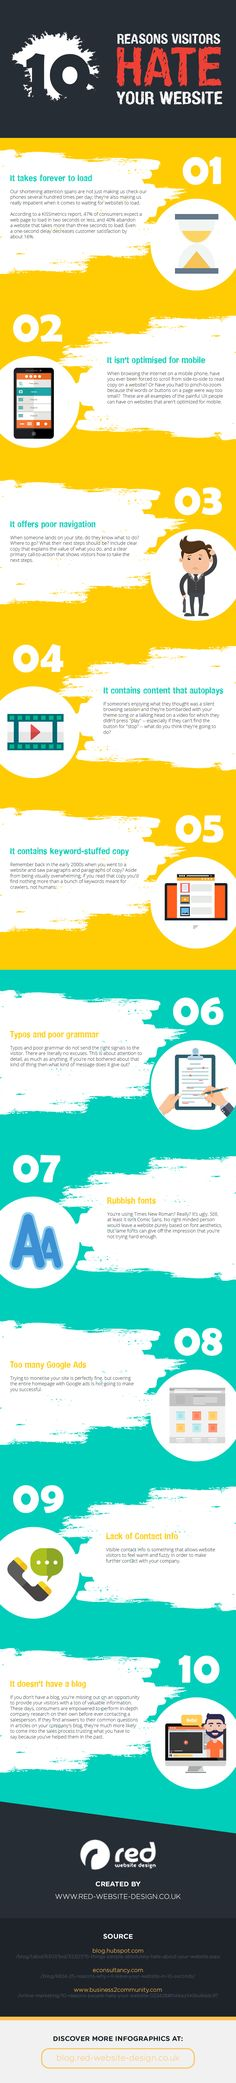 10 Reasons Visitors Hate Your Website [Infographic]